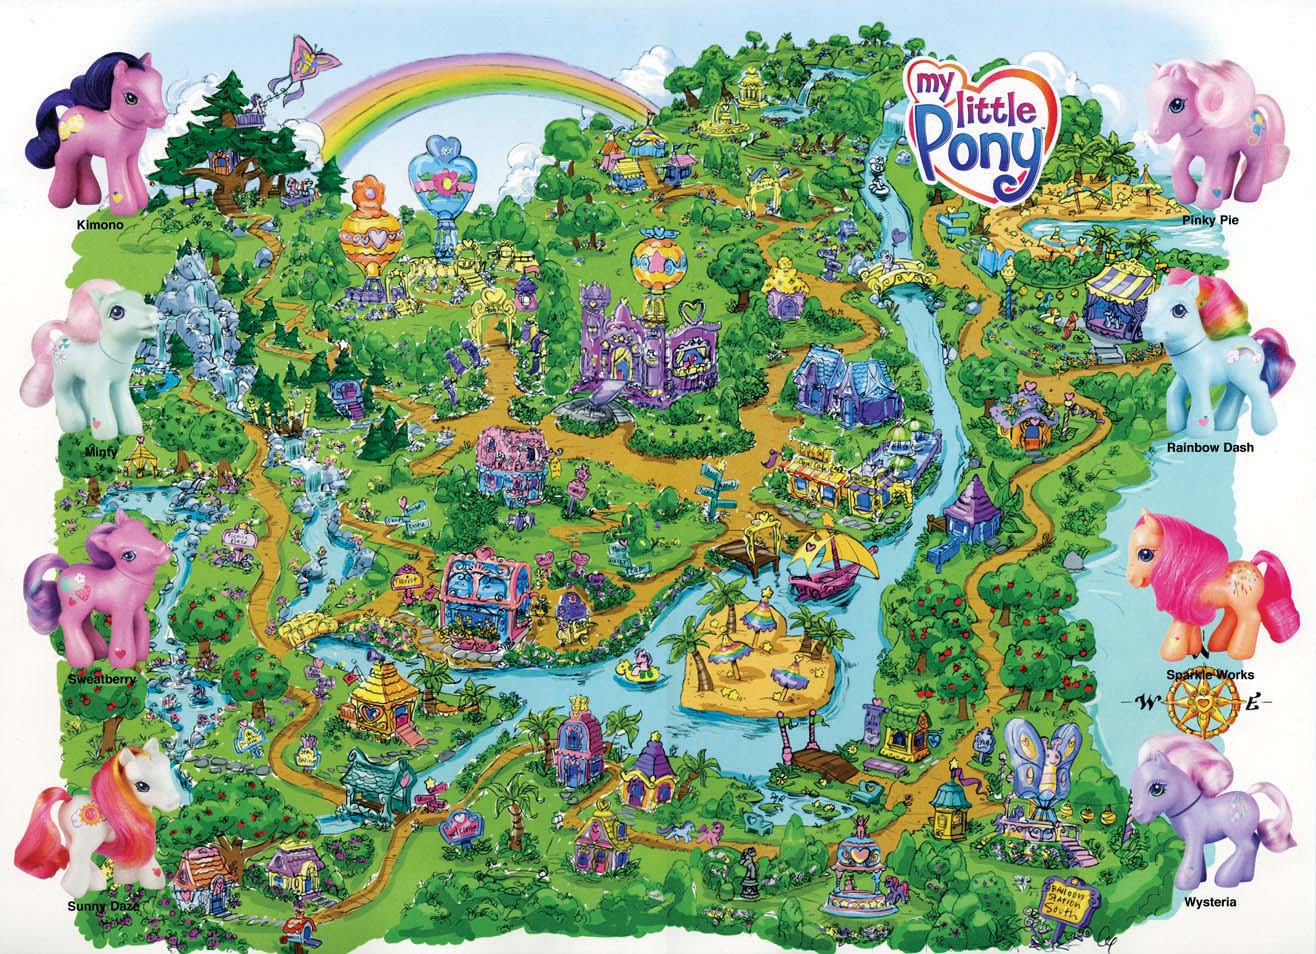 Map Of Ponyville Ponyville | My Little Pony G3 Wiki | FANDOM powered by Wikia